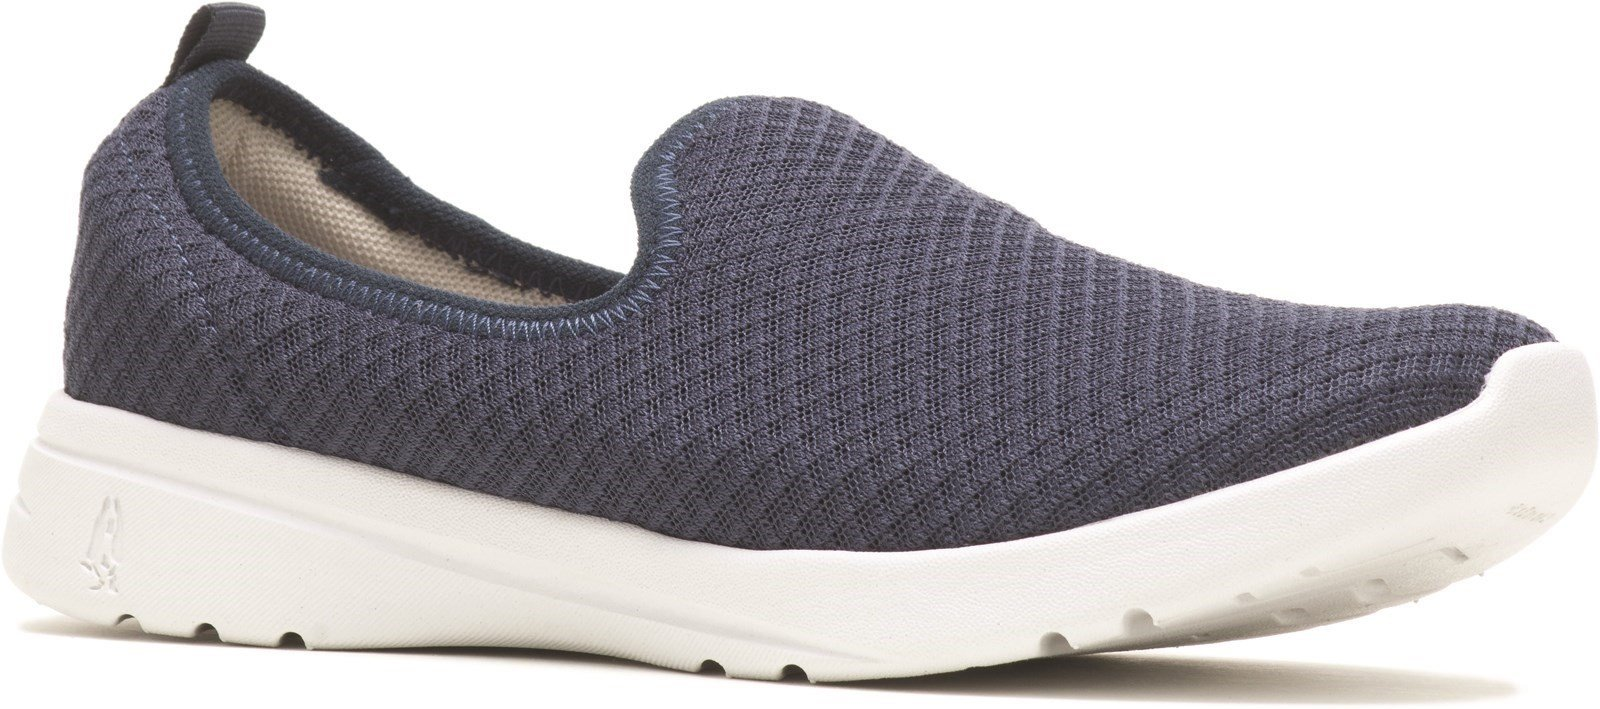 Hush Puppies Women's Good Slip On Shoes Various Colours 32917 - Navy 3